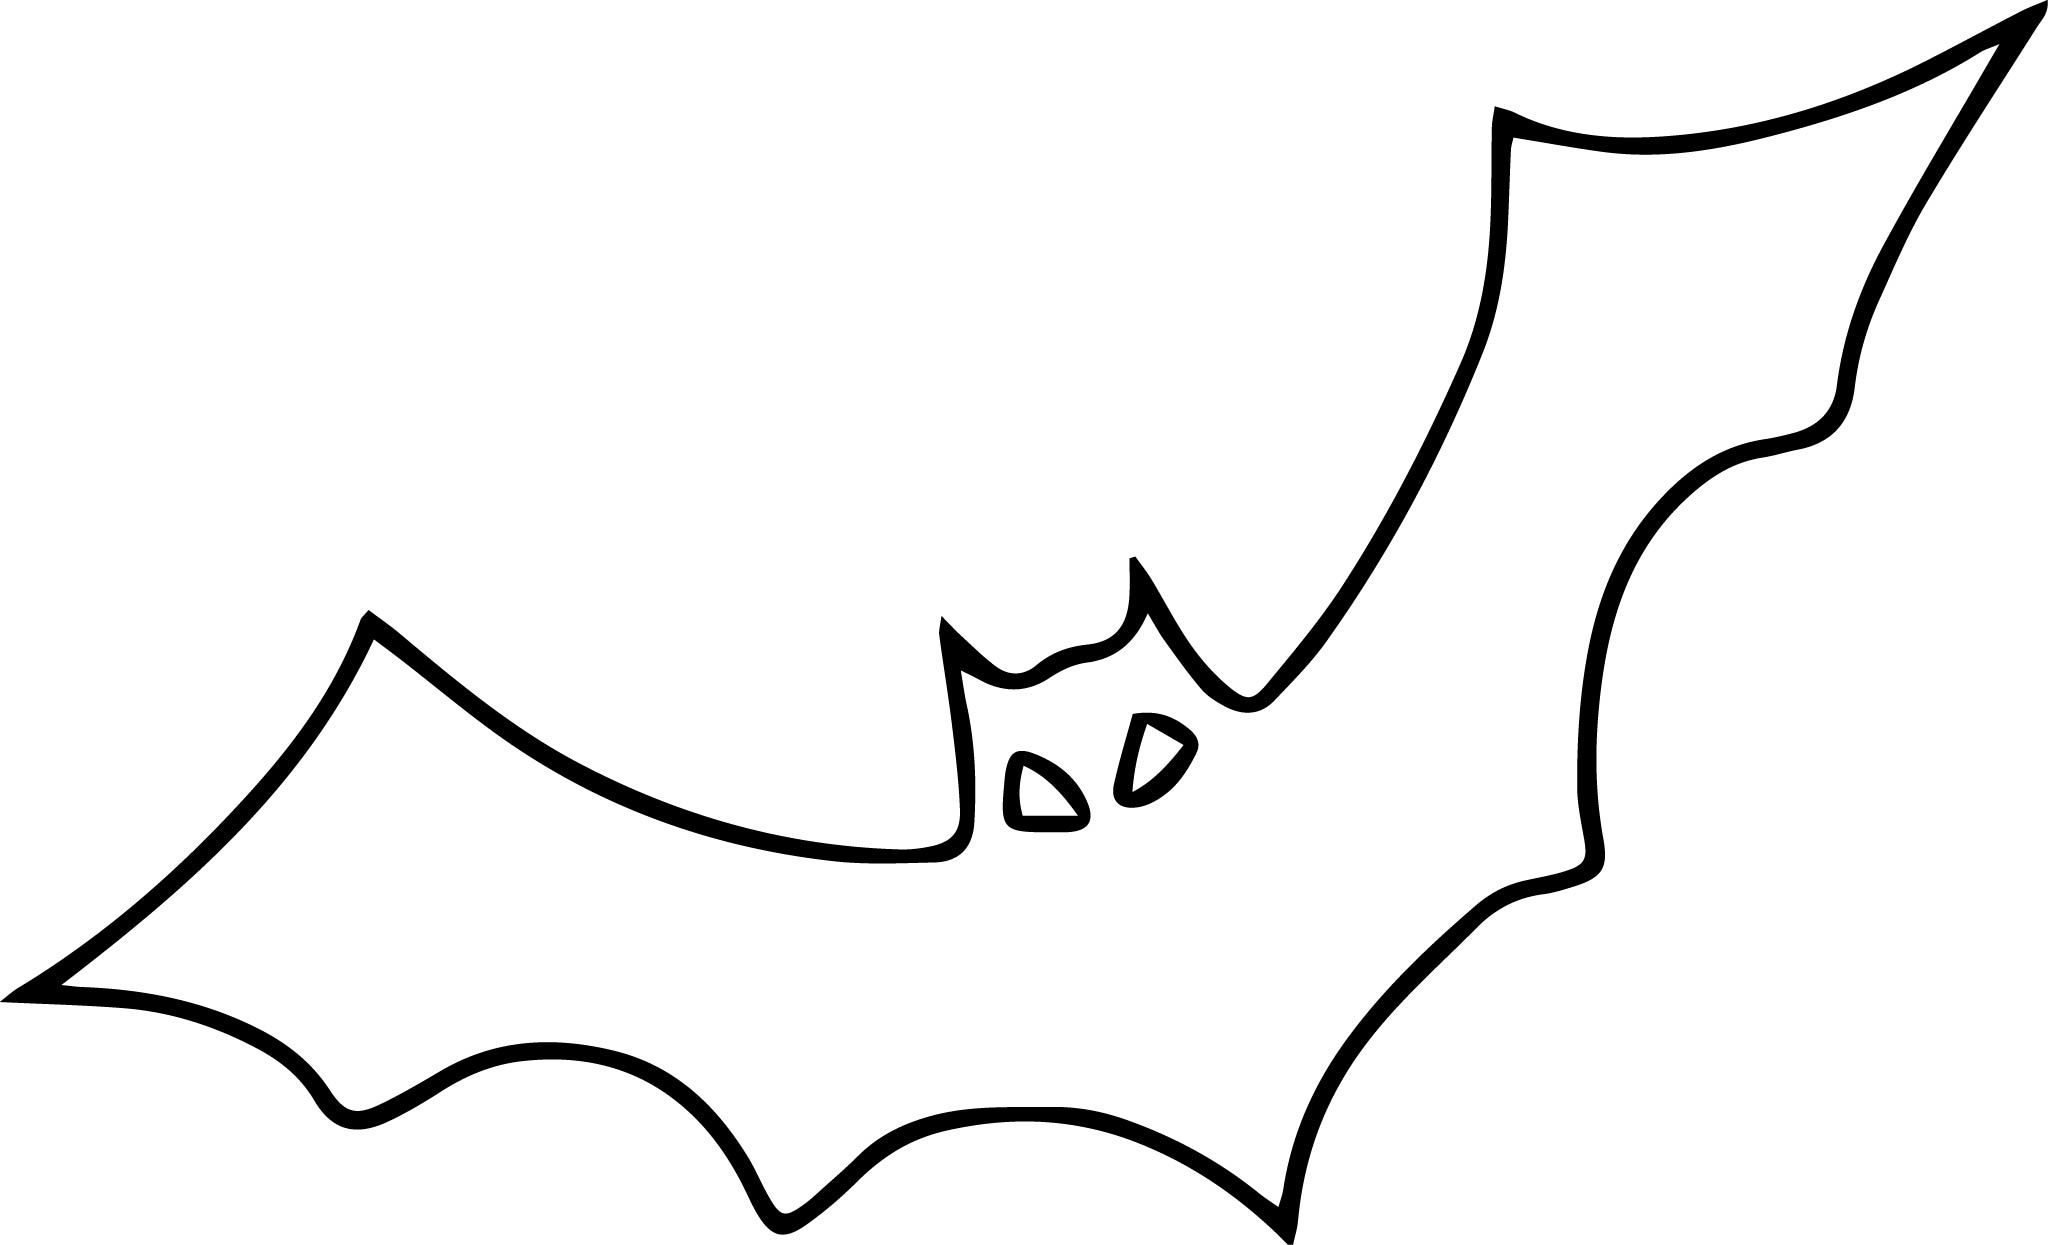 Image Result For Bat Colouring Page Bat Outline Bat Coloring Pages Free Halloween Coloring Pages